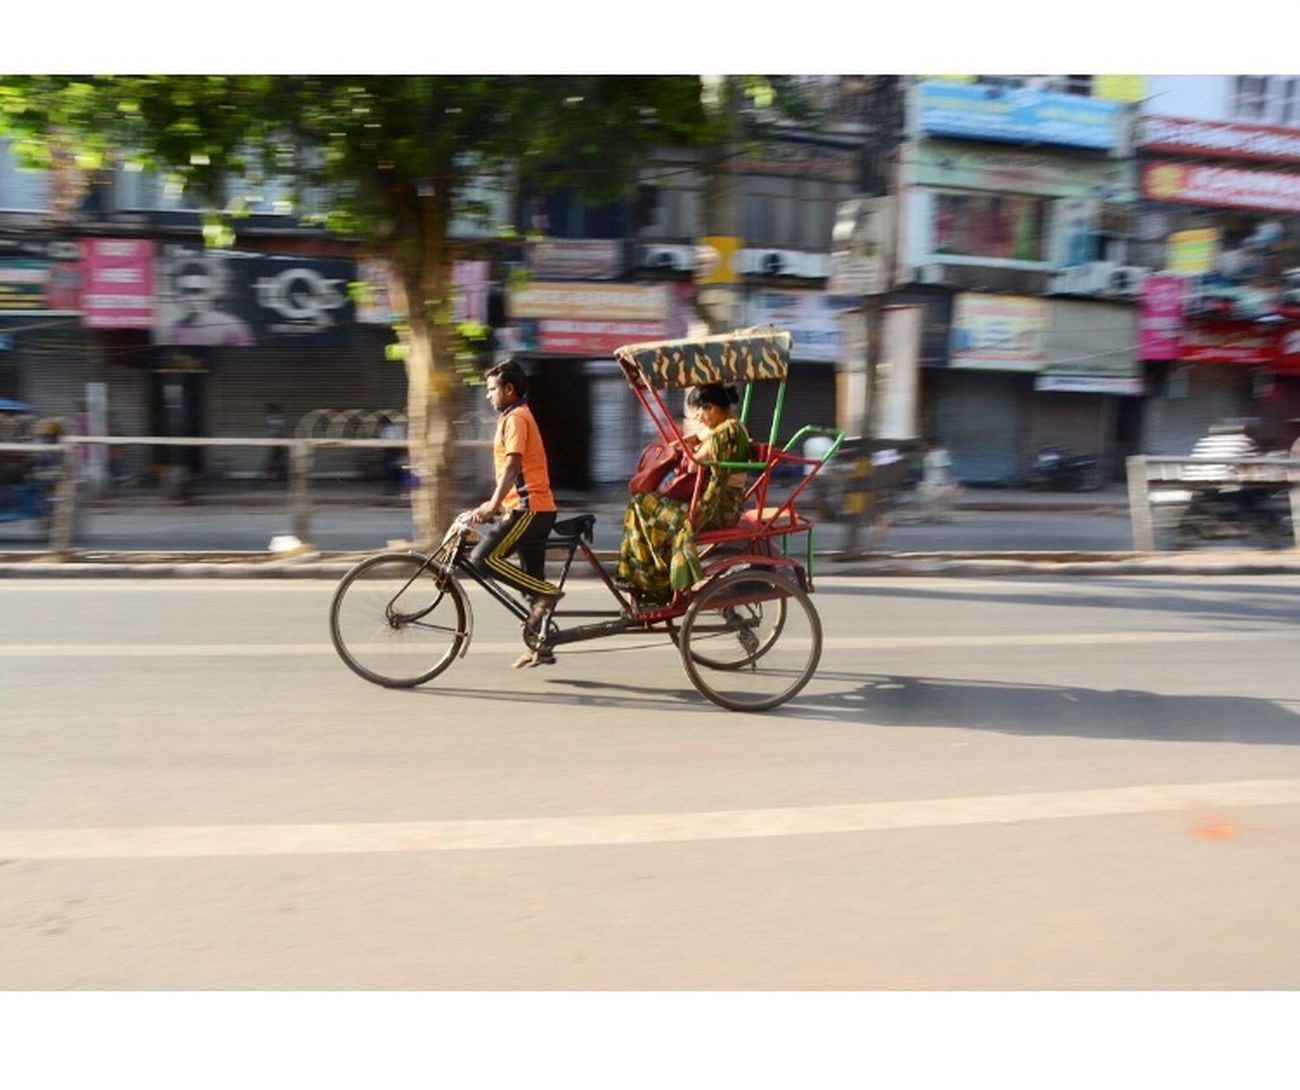 Road On The Move Street Land Vehicle Motion Travel Outdoors Delhi Chandnichowk